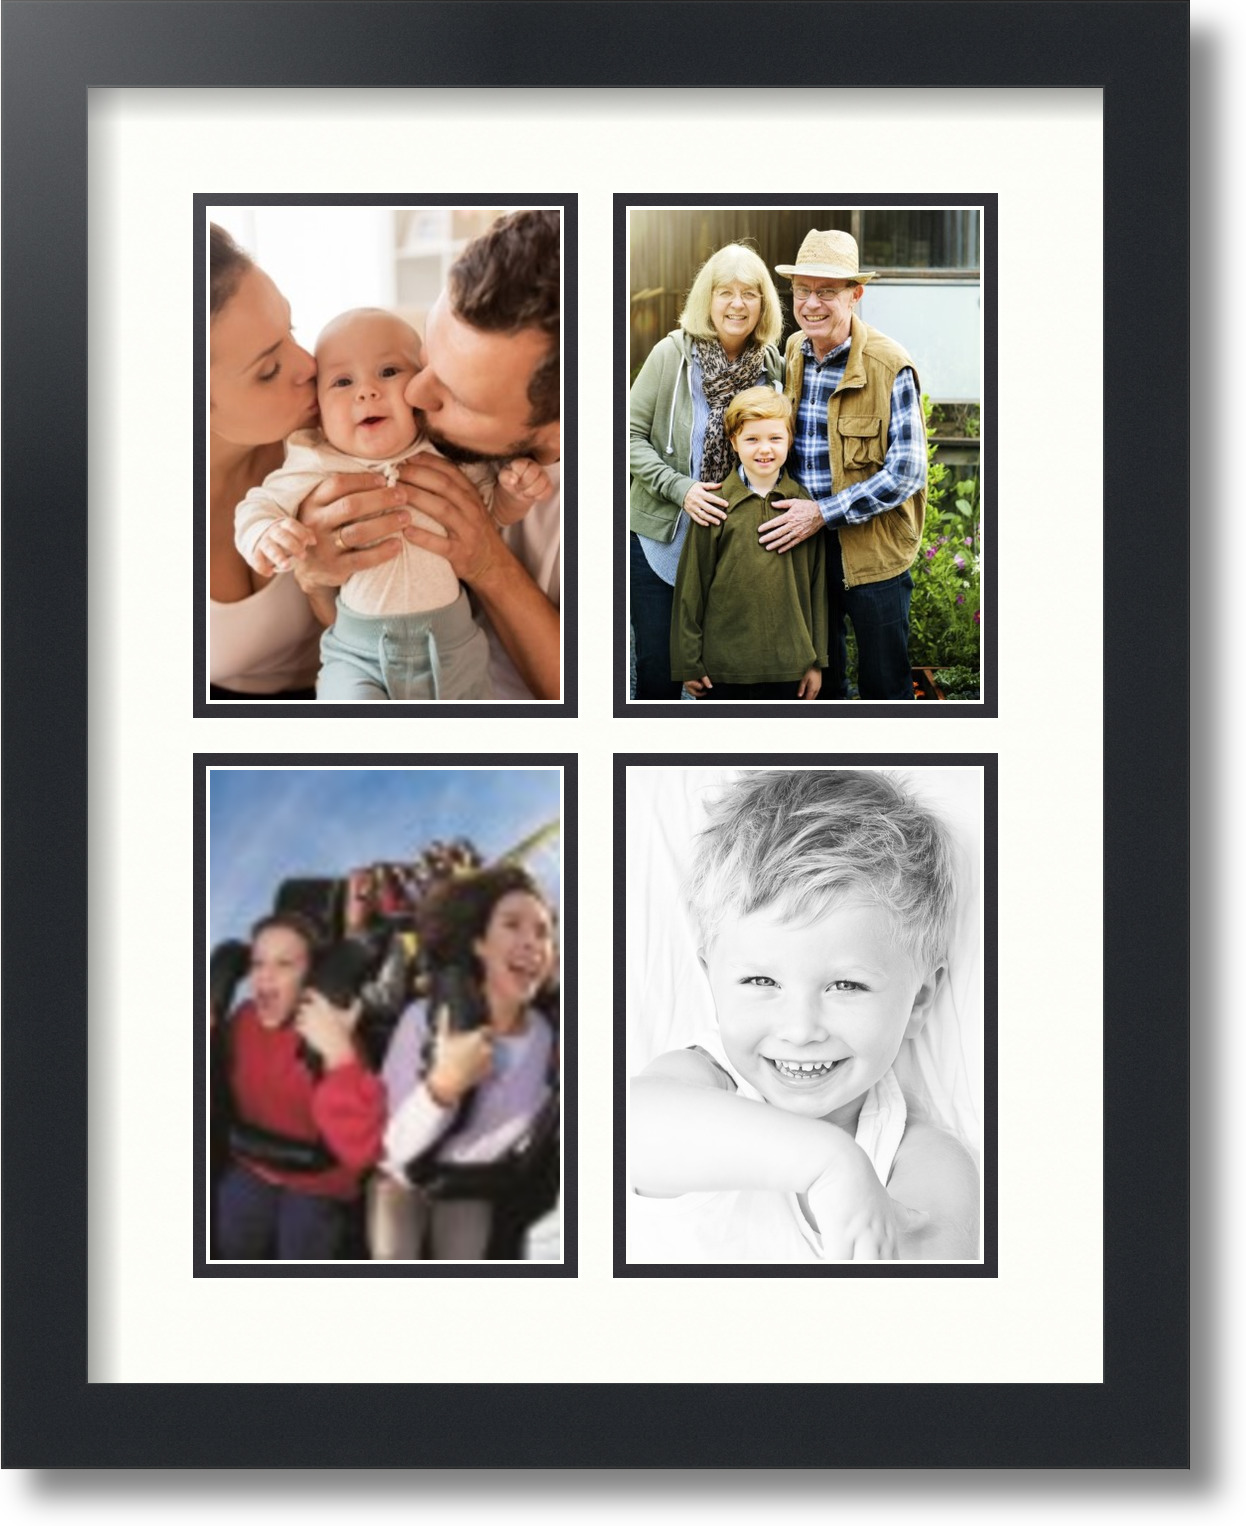 arttoframes collage mat picture photo frame 4 5x7 openings in satin black 3 ebay. Black Bedroom Furniture Sets. Home Design Ideas